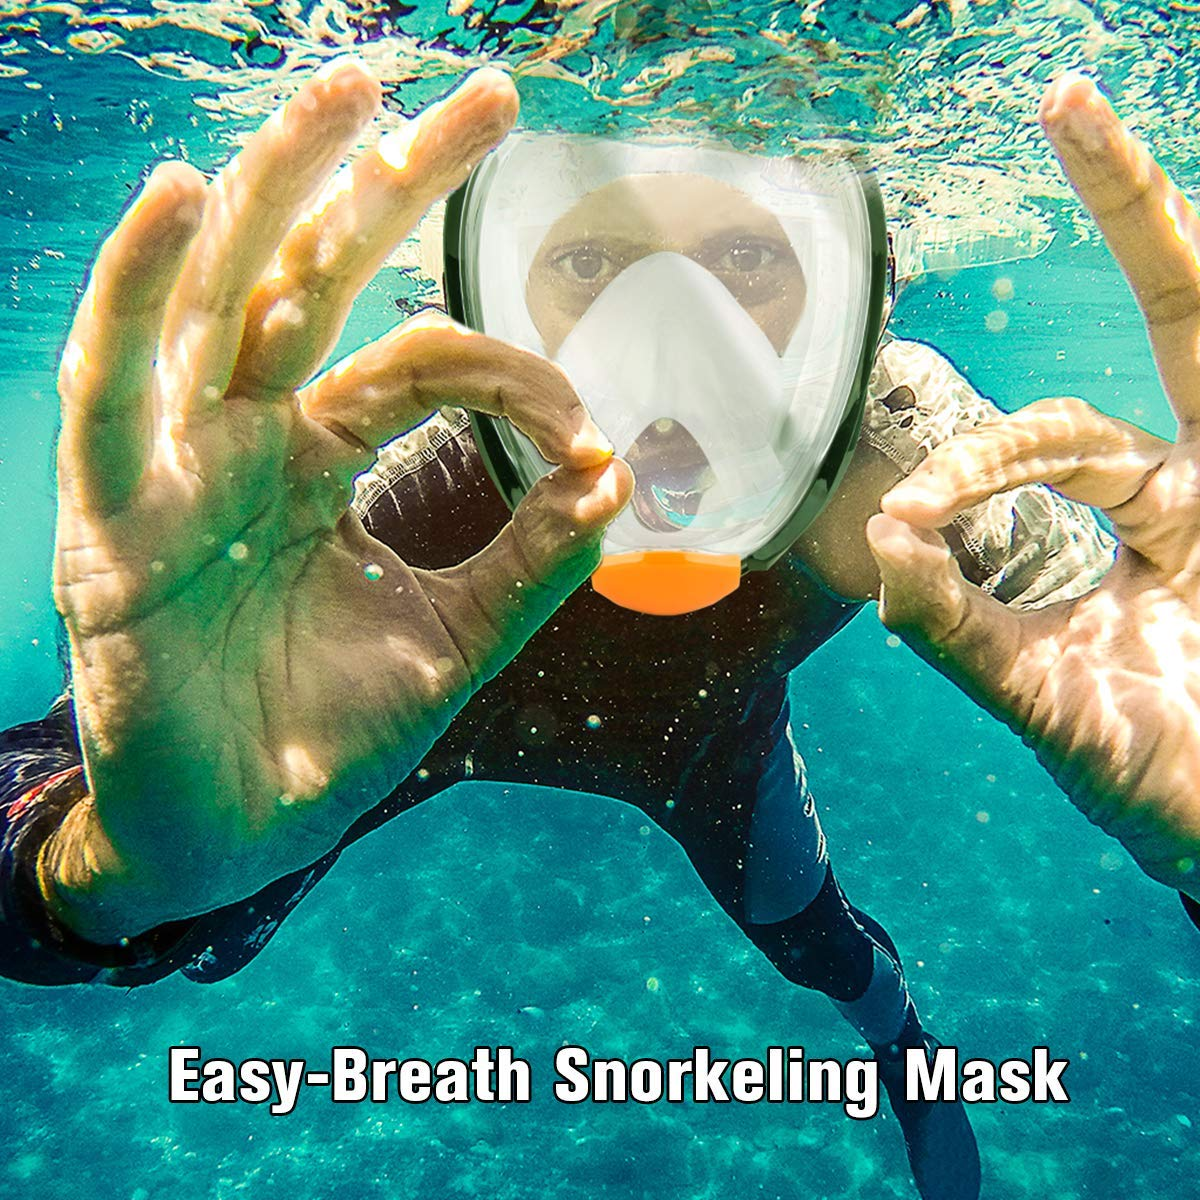 RASSE Full Face Snorkel Mask,Snorkeling Mask with Anti-Fog Anti-Leak Design and Detachable Camera Mount,Easier Breath with 180 Degree Larger View Area for Adults Youth Kids